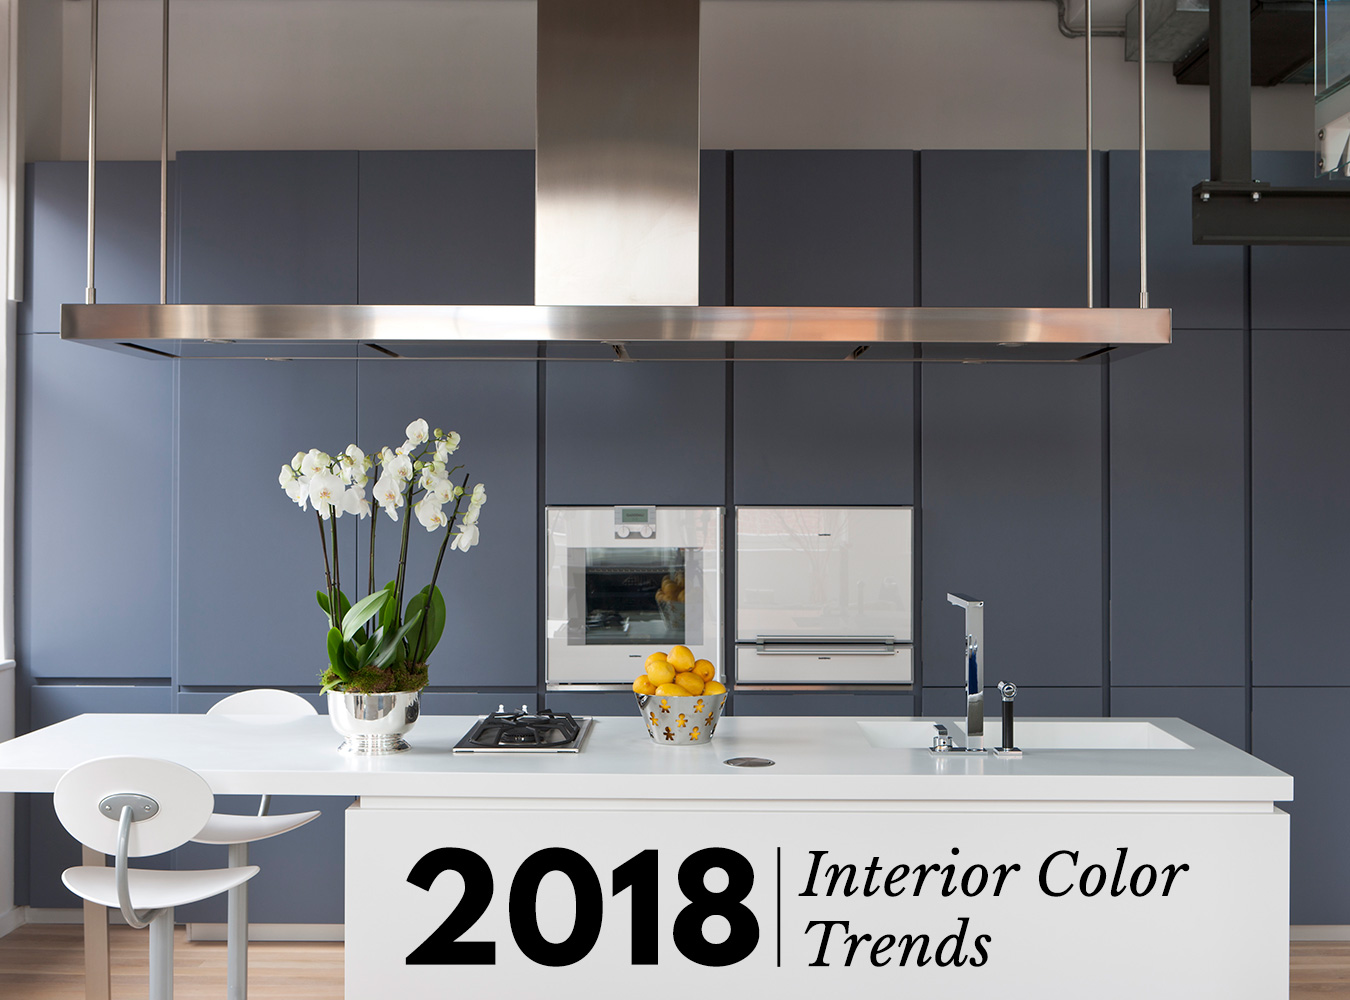 2018 interior color trends for every room in the home